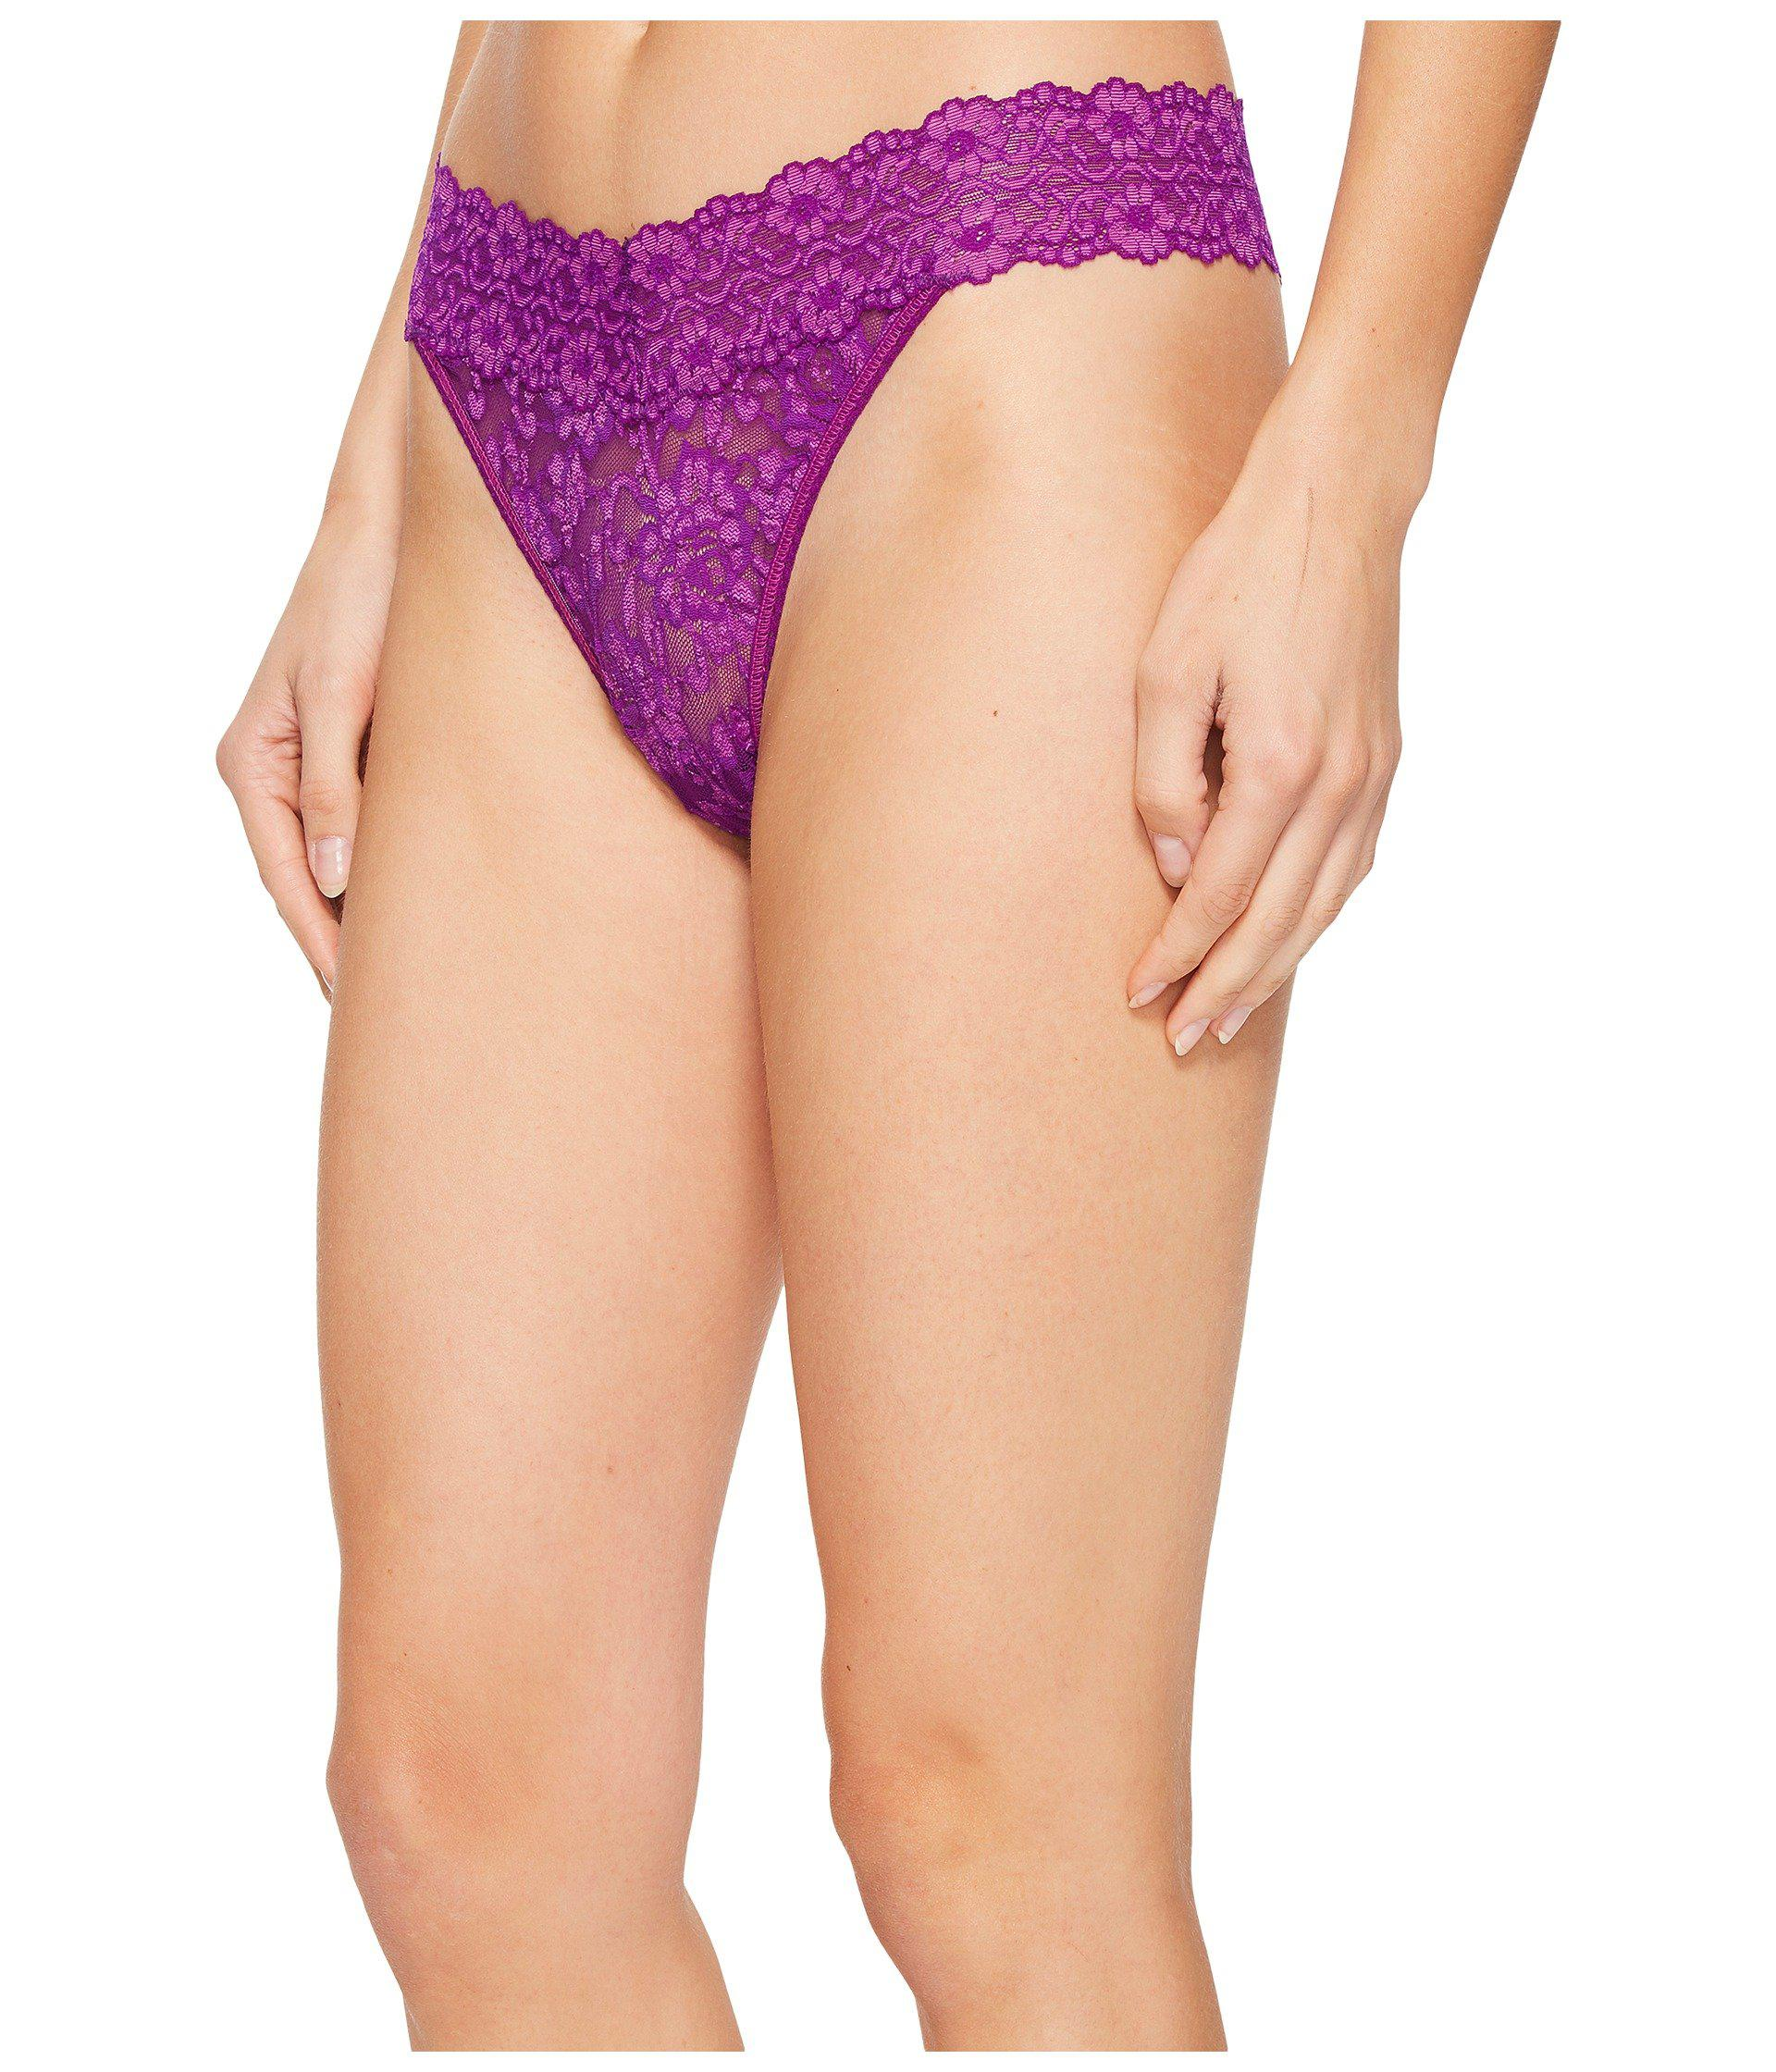 5c0b8f3d8ff Lyst - Hanky Panky Cross-dyed Signature Lace Original Rise Thong  (taupe vanilla) Women s Underwear - Save 5%